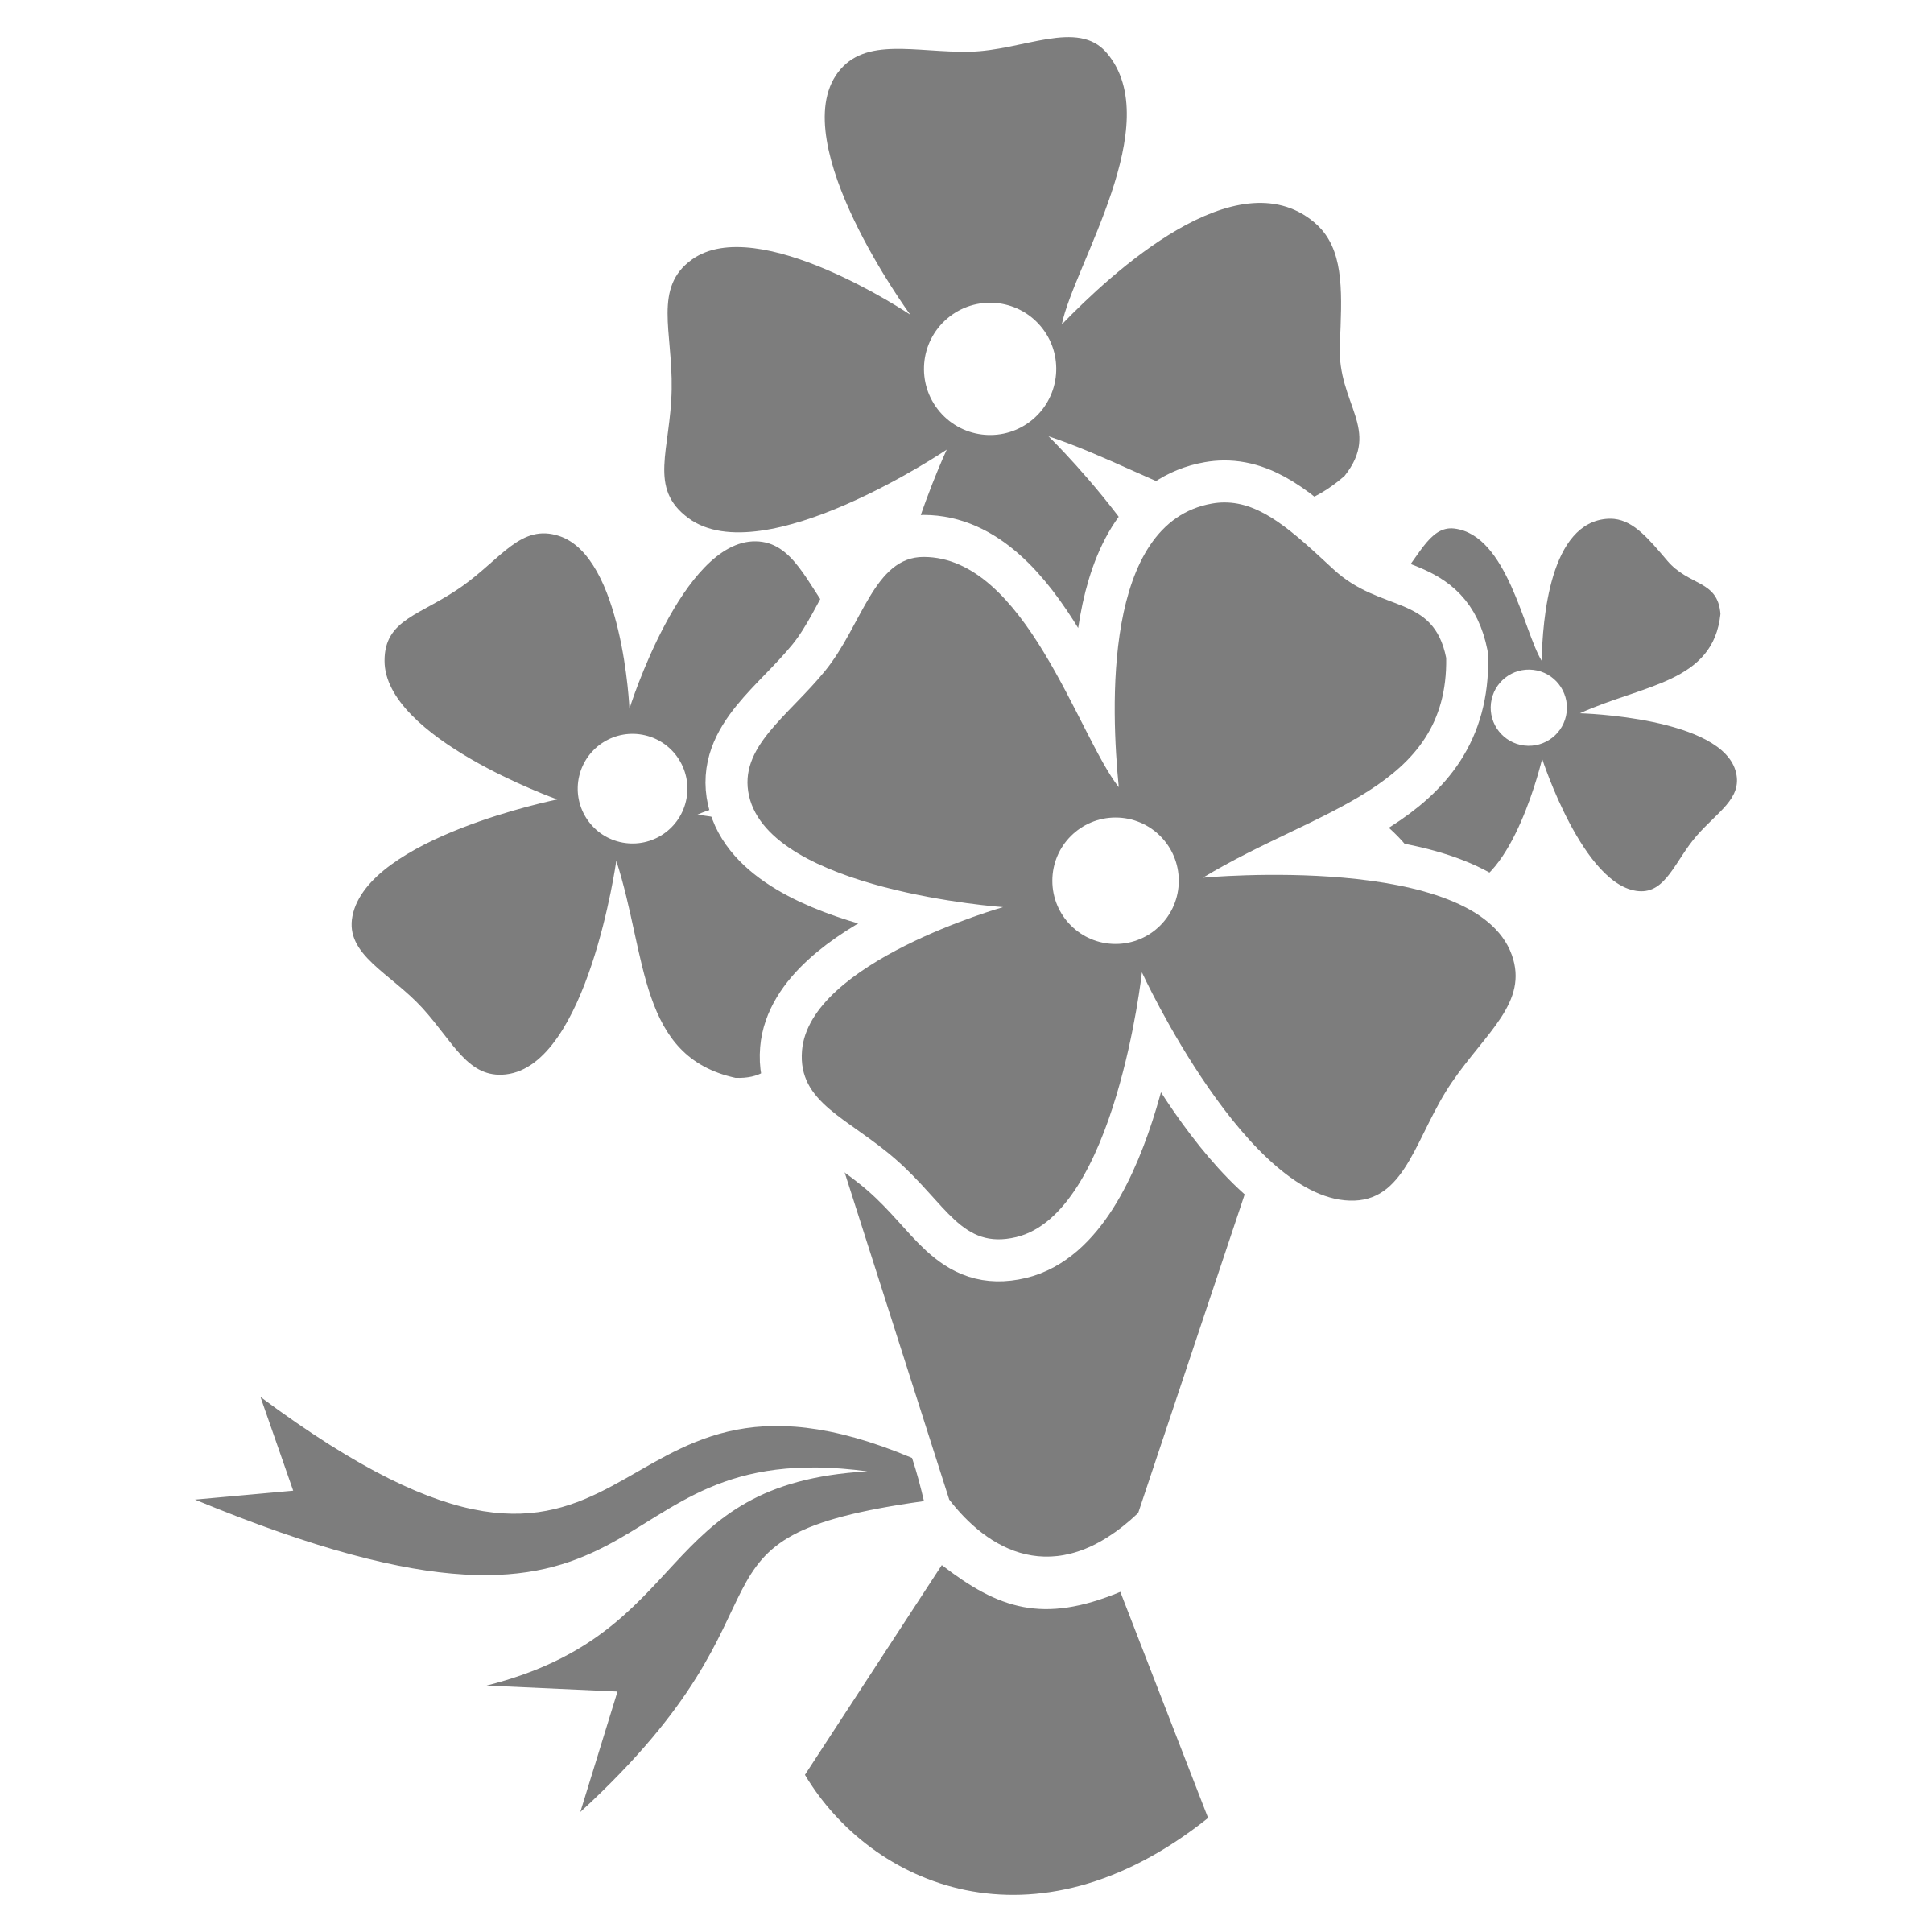 Flower vase clipart black and white svg freeuse stock Flowers in a vase Icons PNG - Free PNG and Icons Downloads svg freeuse stock